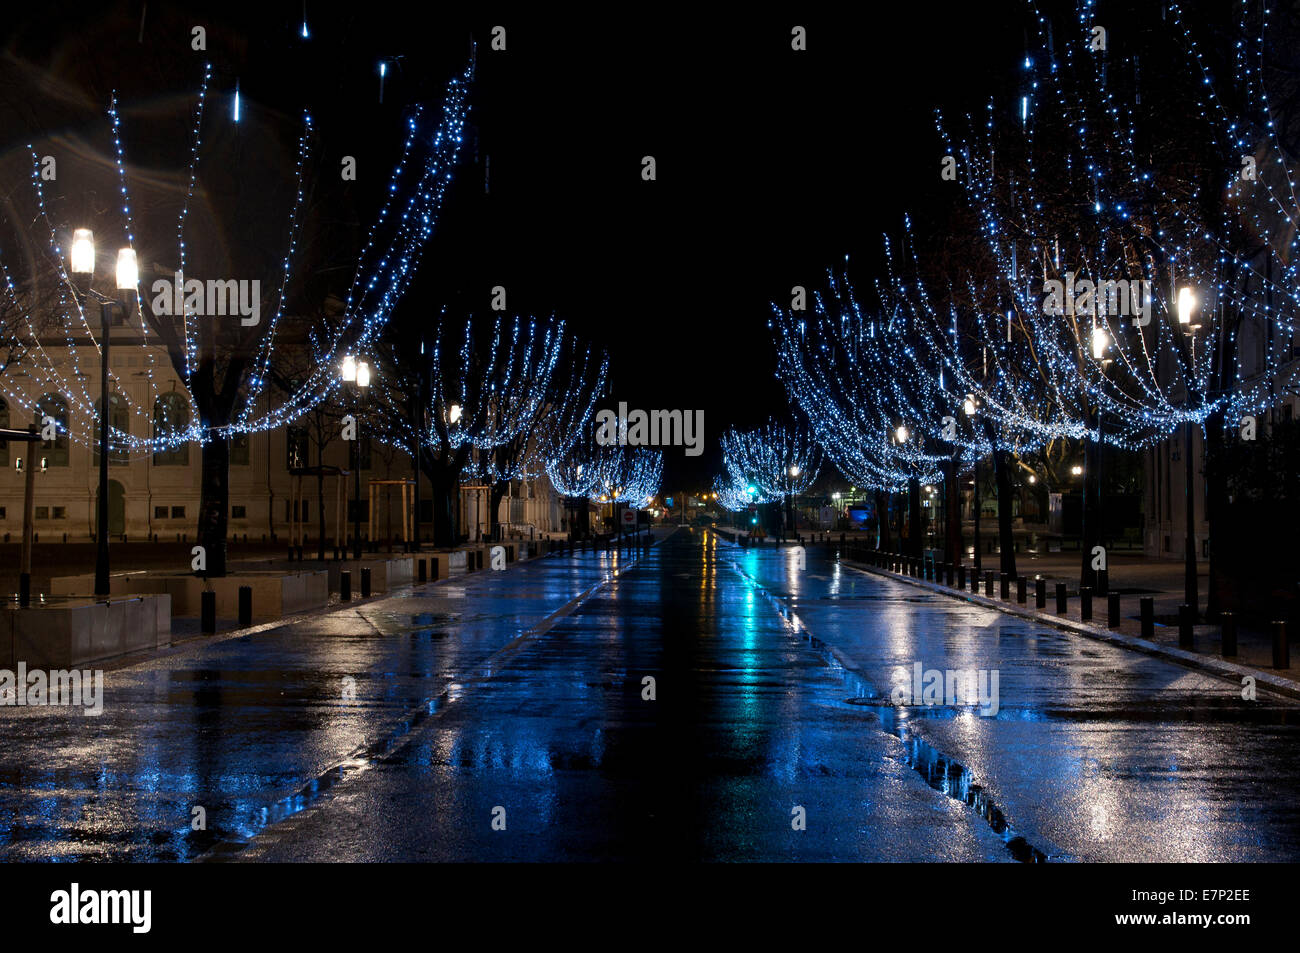 Decoration Nimes France Gard Nimes City Stock Photos France Gard Nimes City Stock